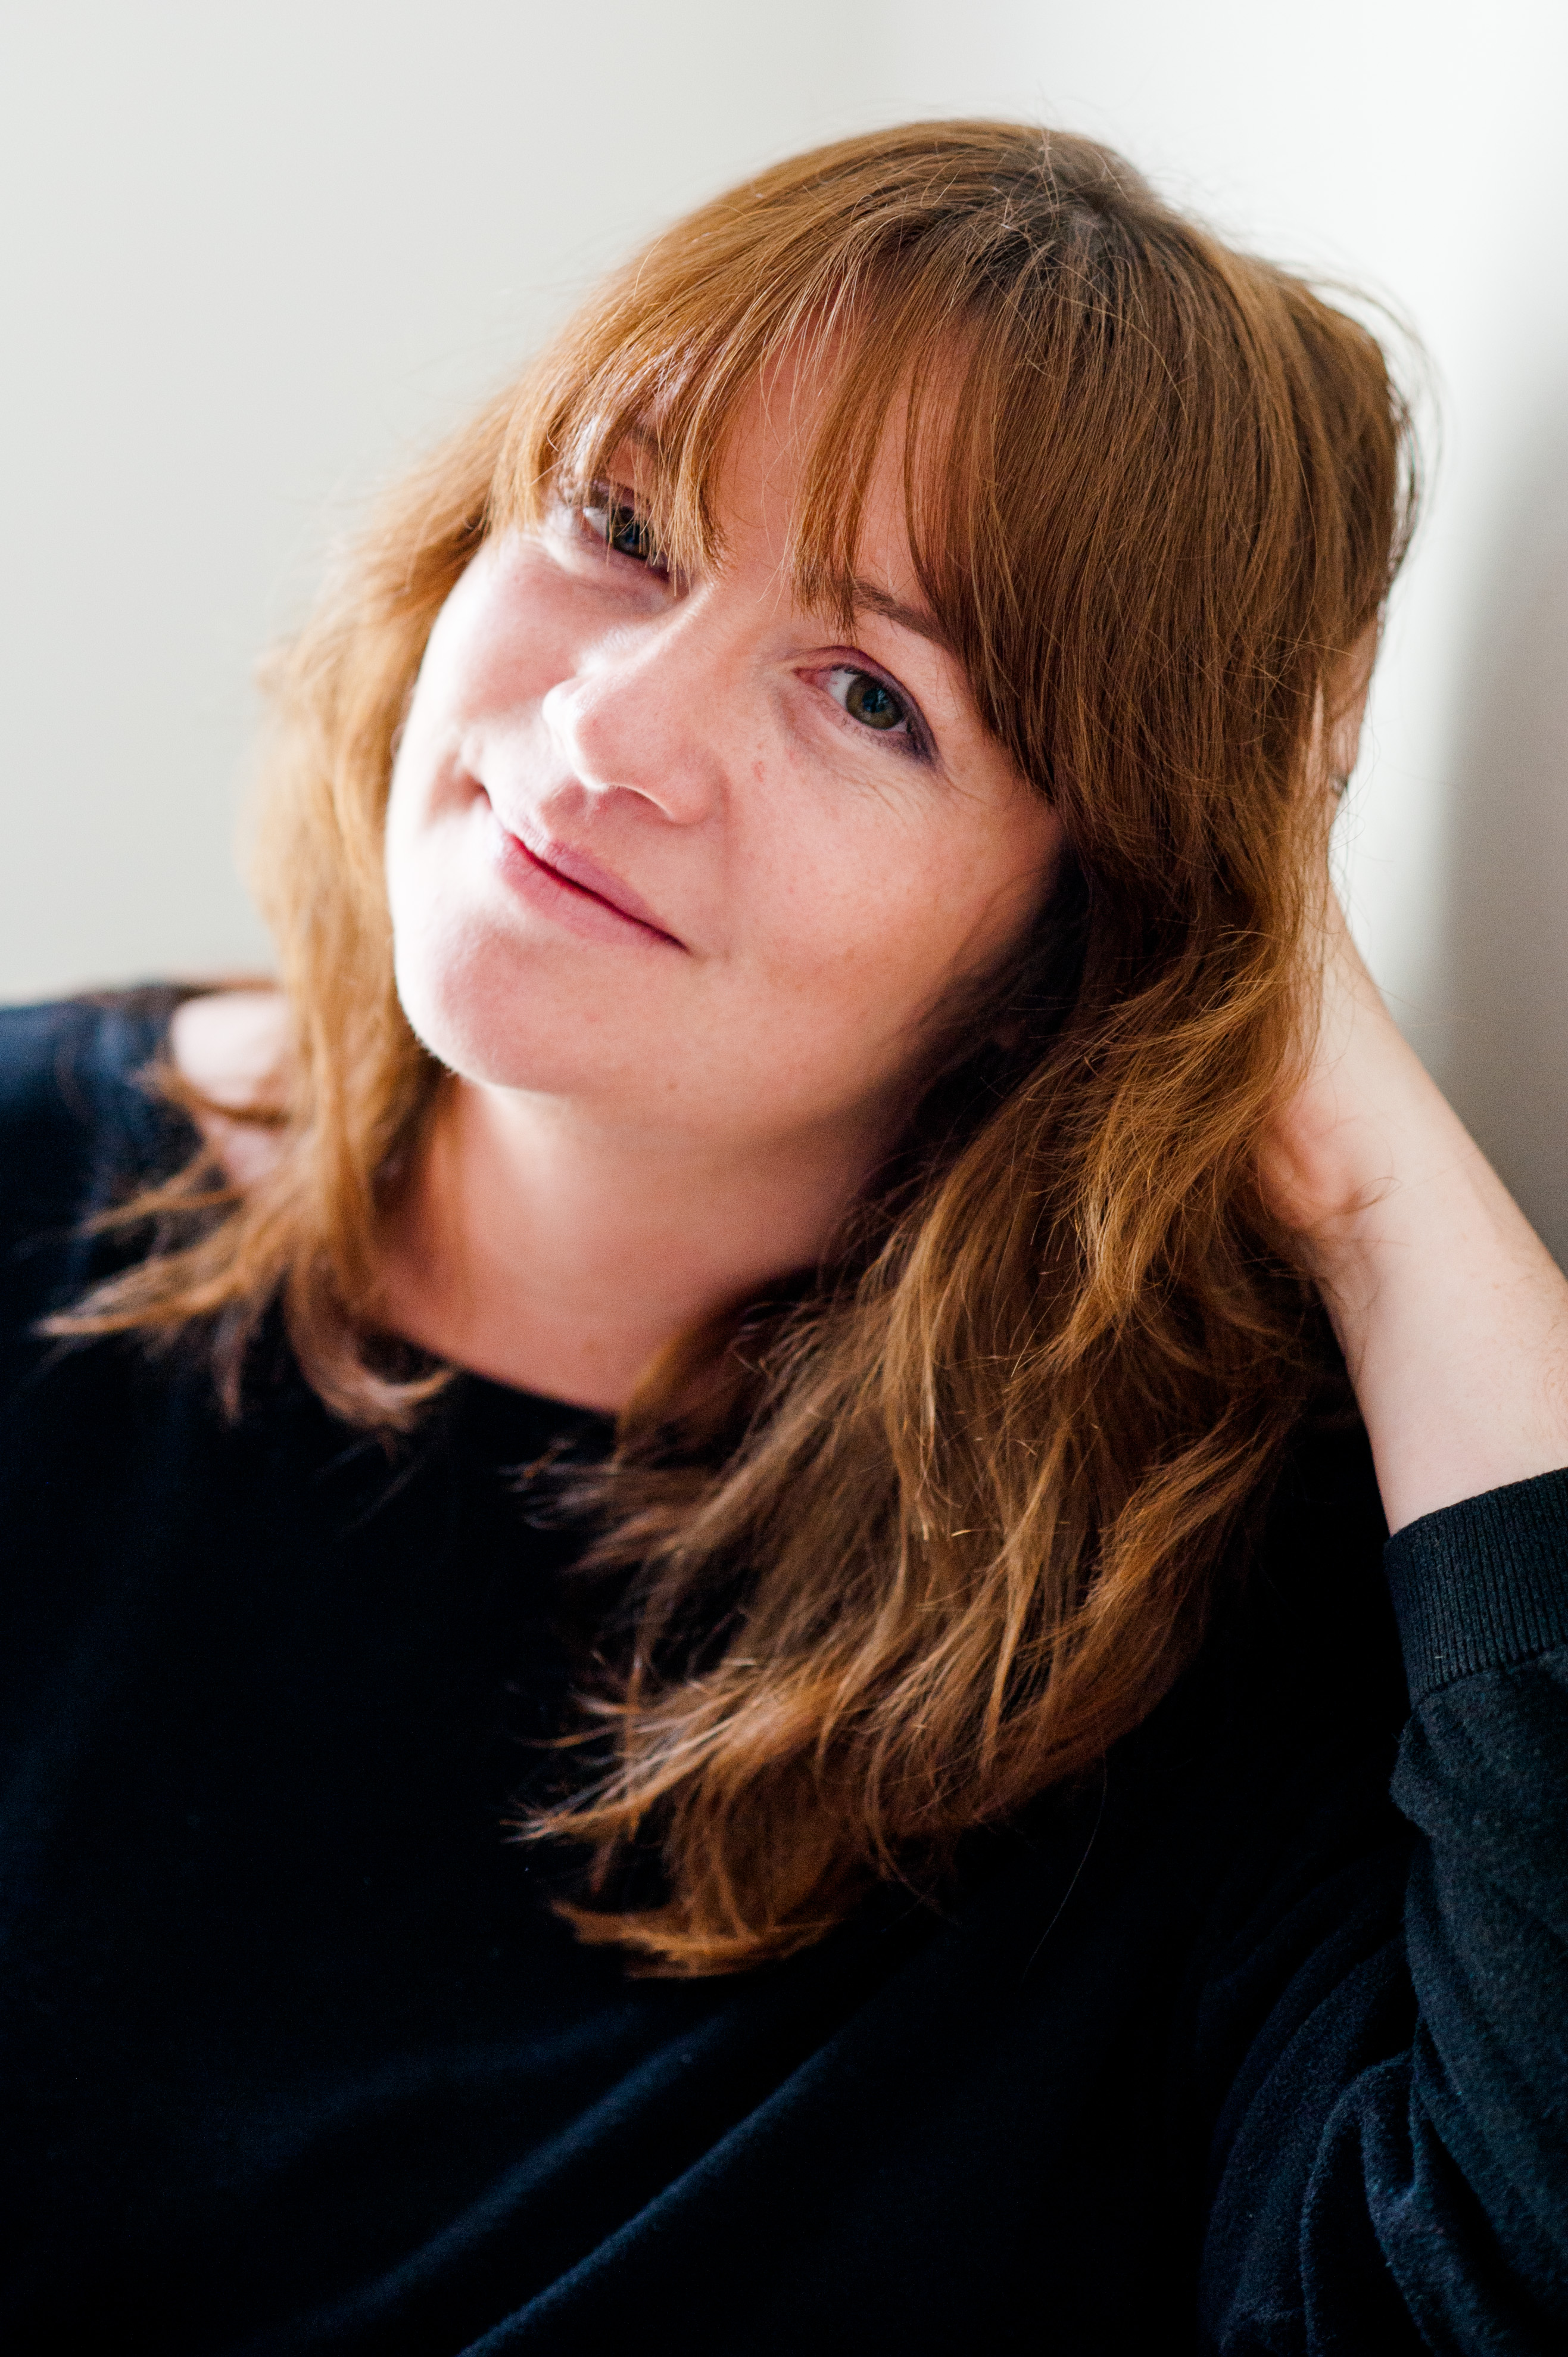 Eimear McBride to read at UCC